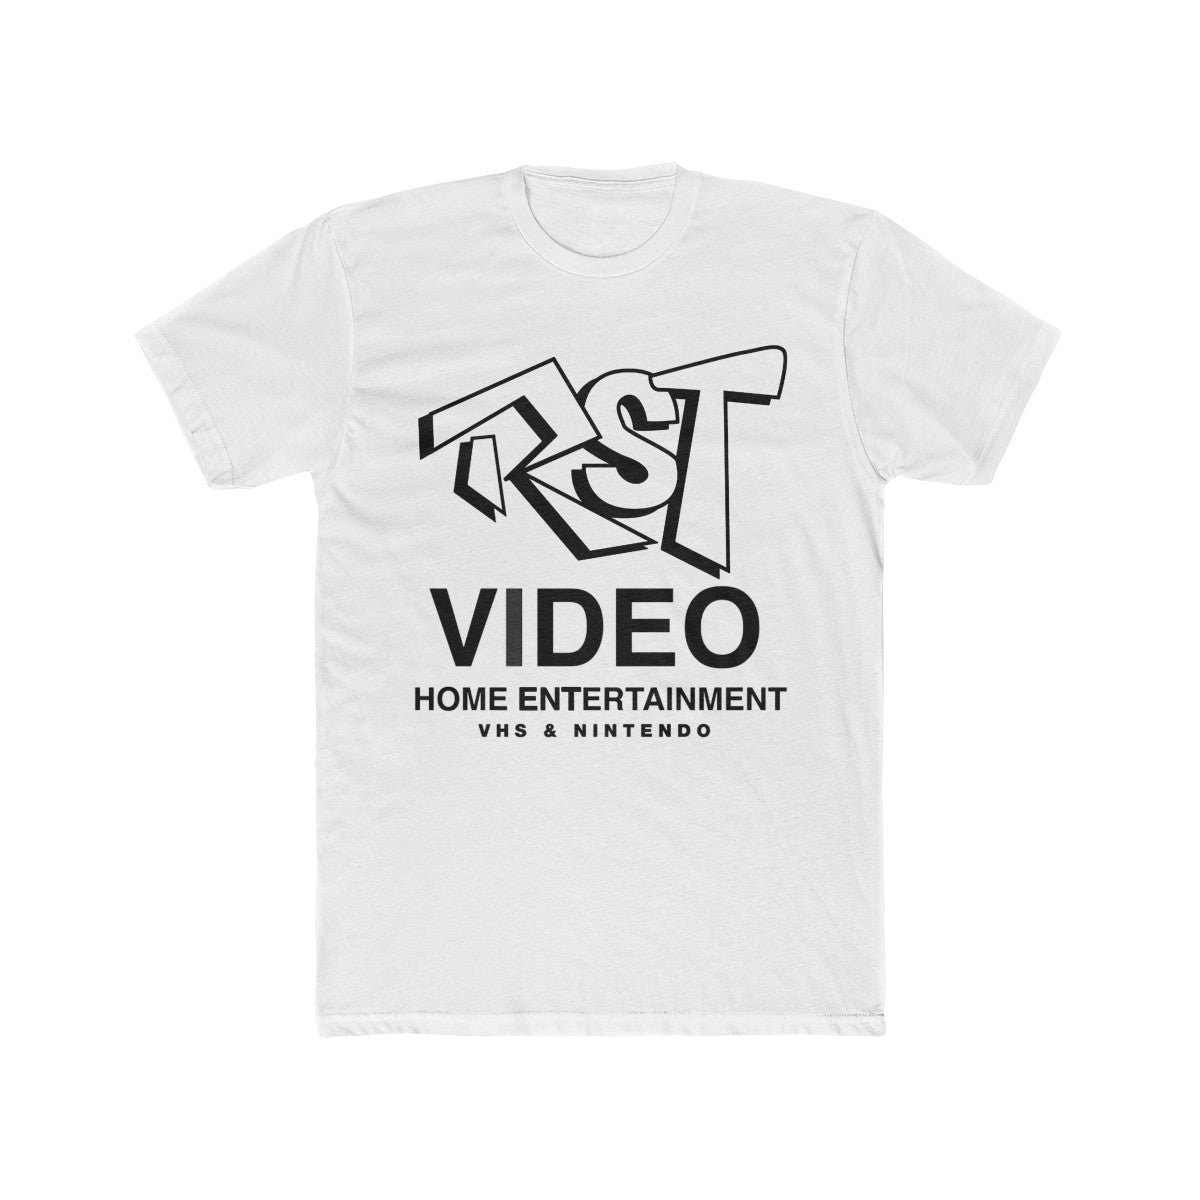 RST Video Men's Cotton Crew Tee